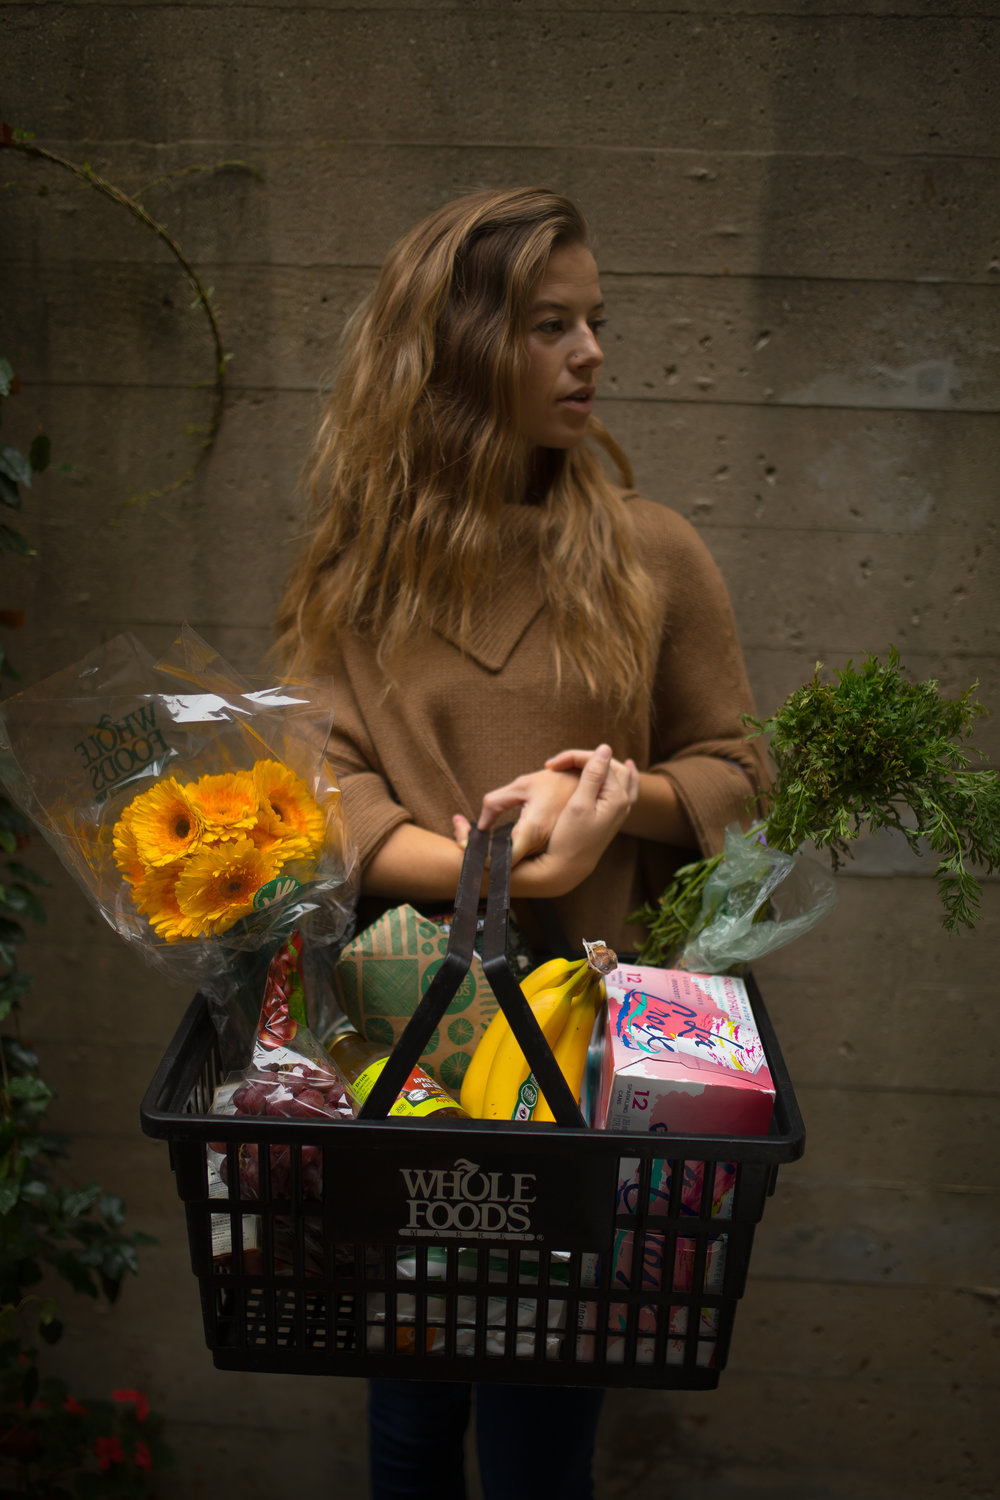 groceries_woman_whole_foods